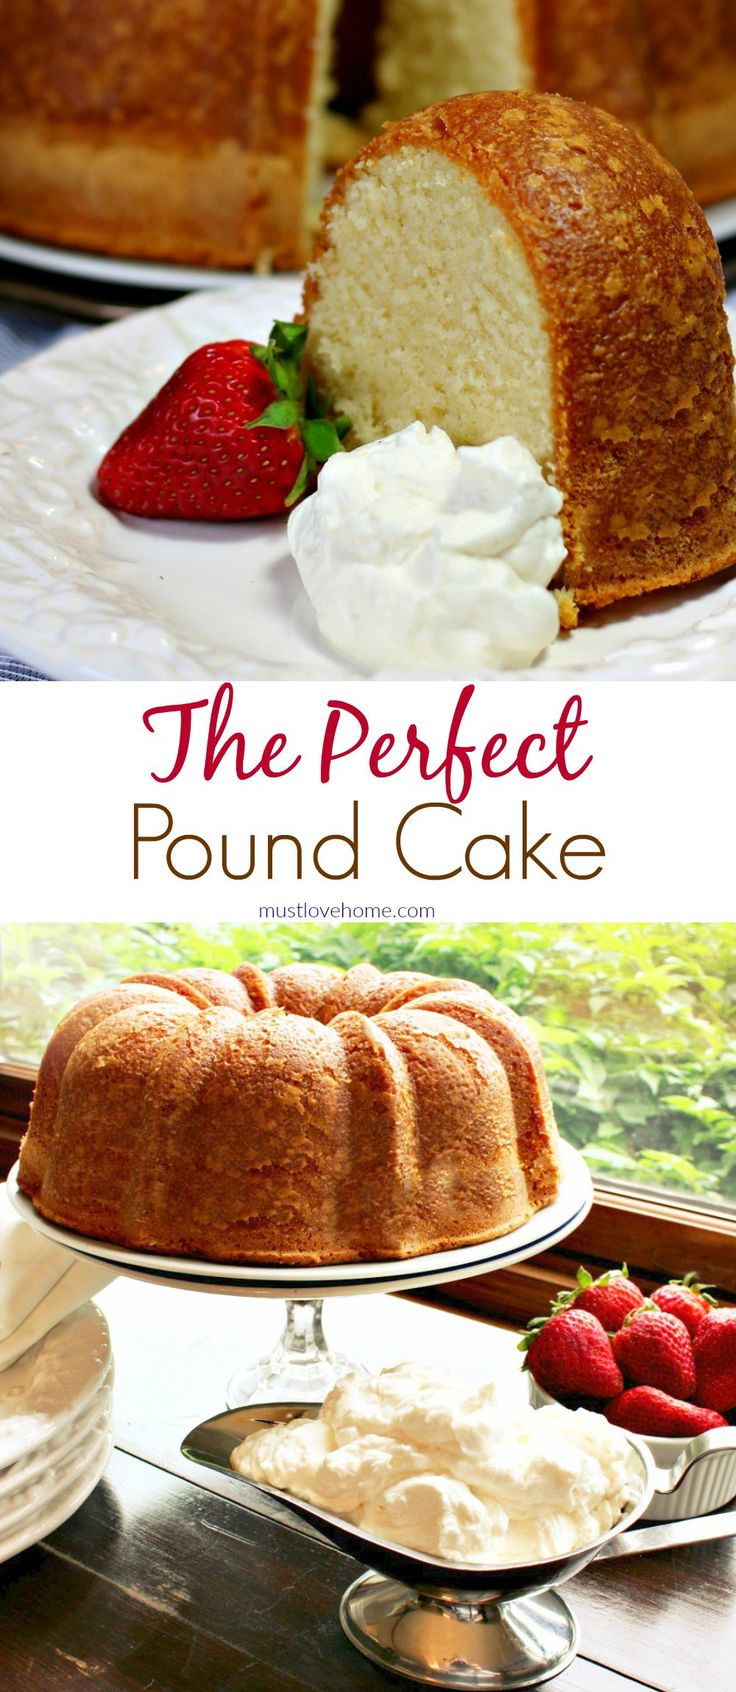 Perfect Pound Cake is buttery and sweet, with a hint of vanilla. This cake is rich, with the flavor of shortbread cookies, but is still light as a feather. Serve with fresh whipped cream and berries as a fancy dessert or brunch dish - can also be made ahead and frozen.